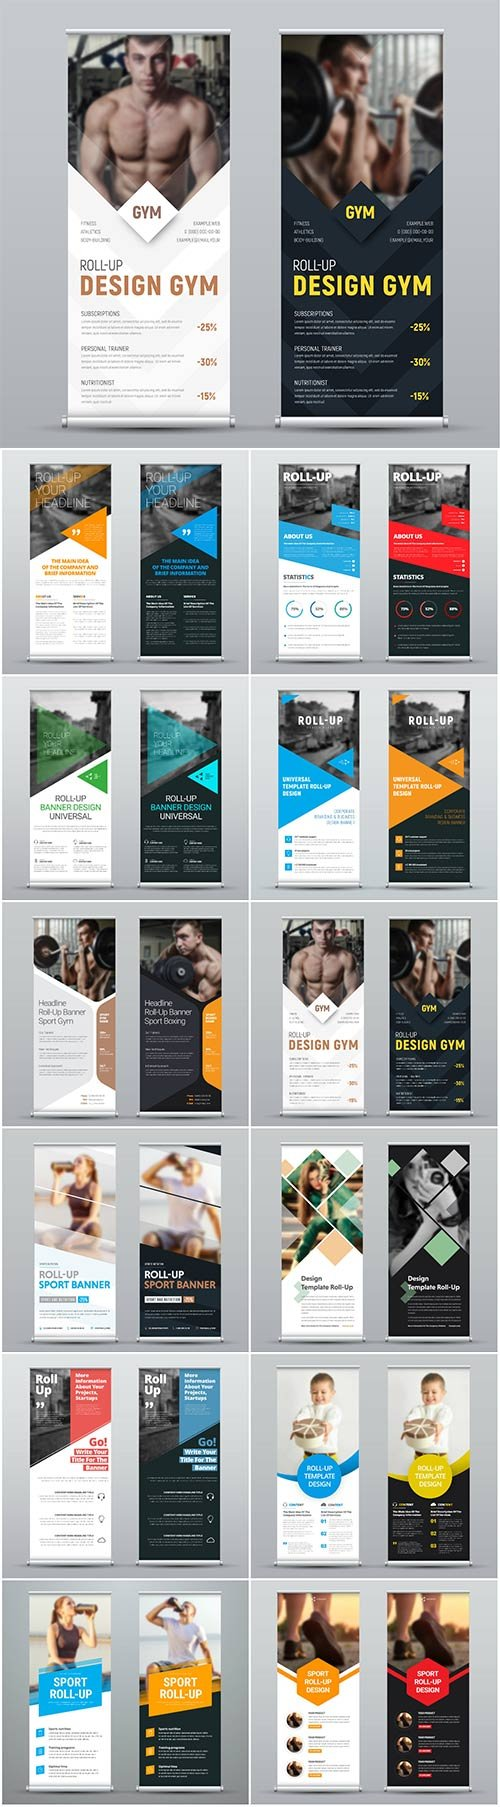 Roll up banners for web and advertisement print out, vector flyer handout design